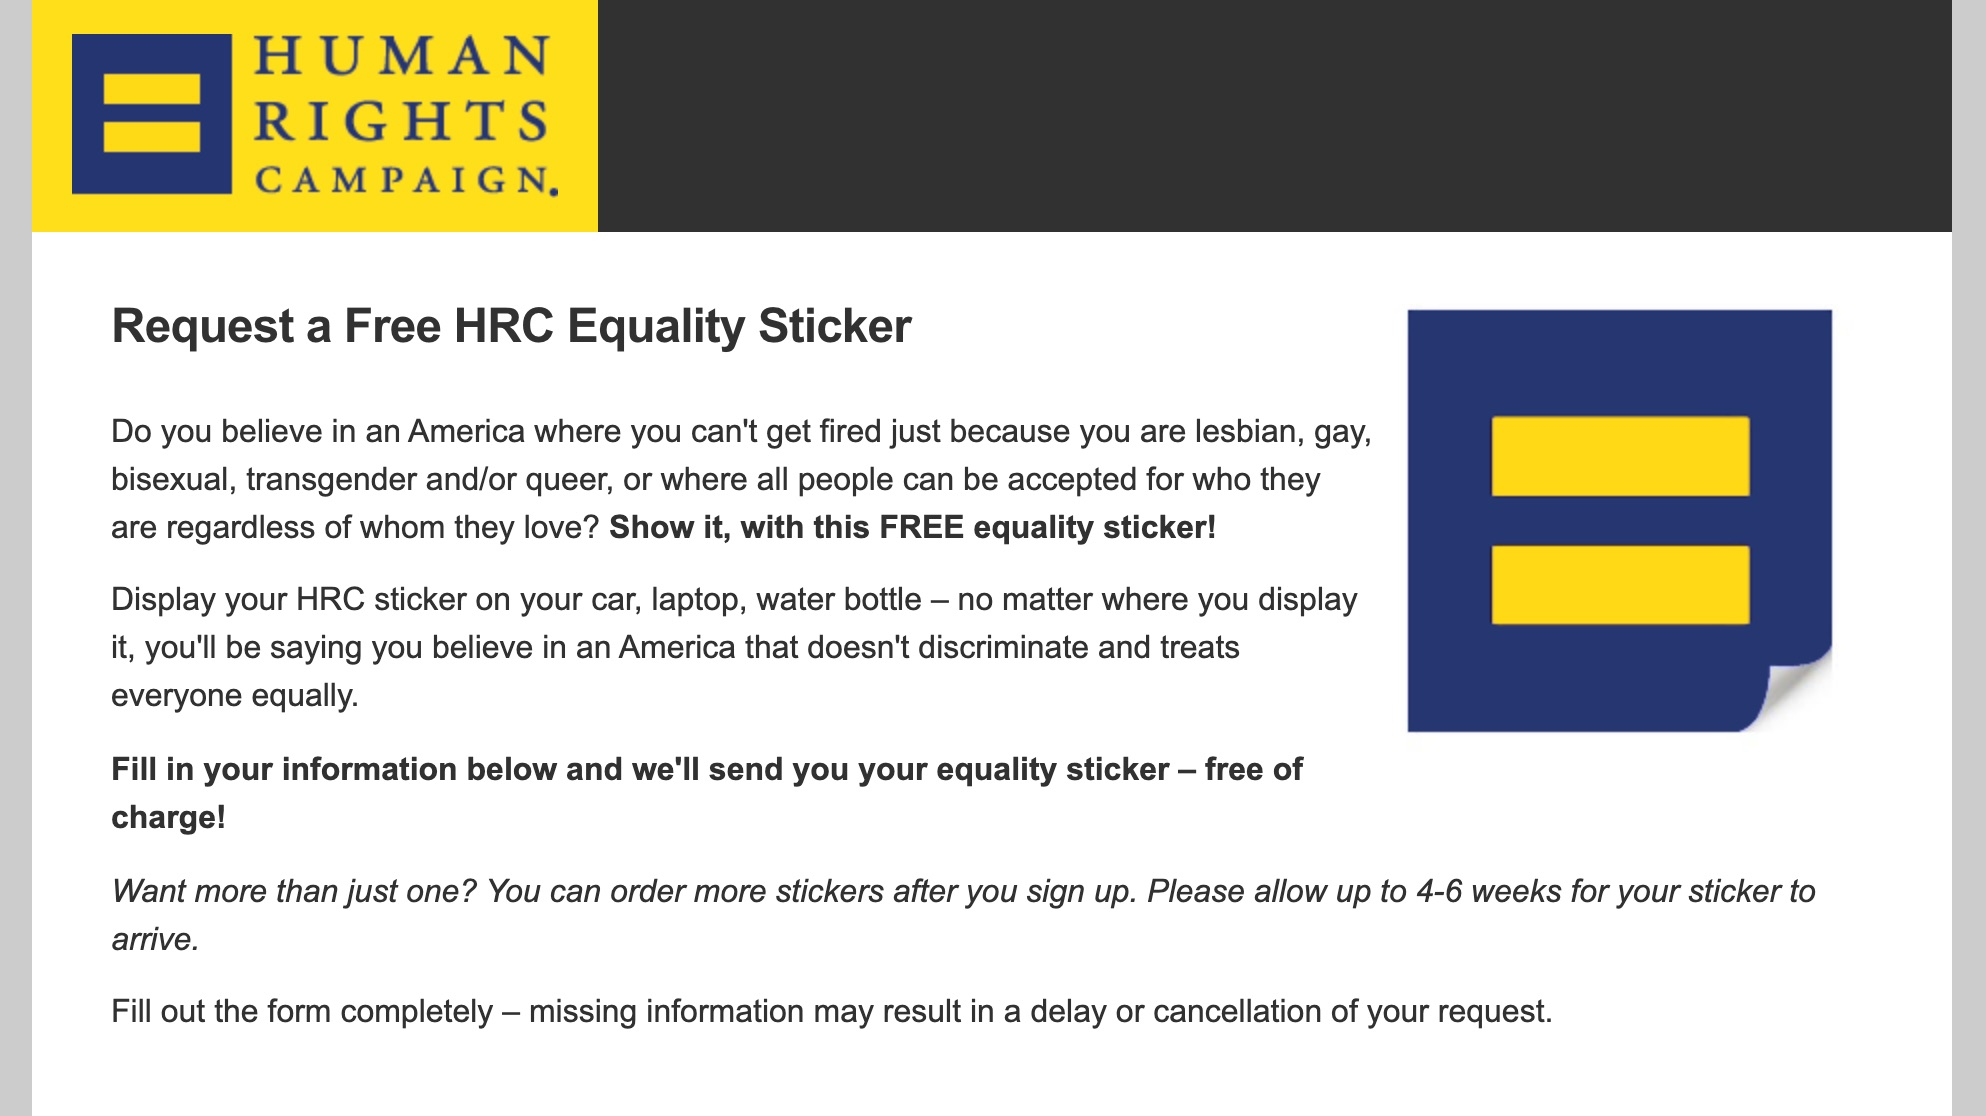 Human rights campaign stickers